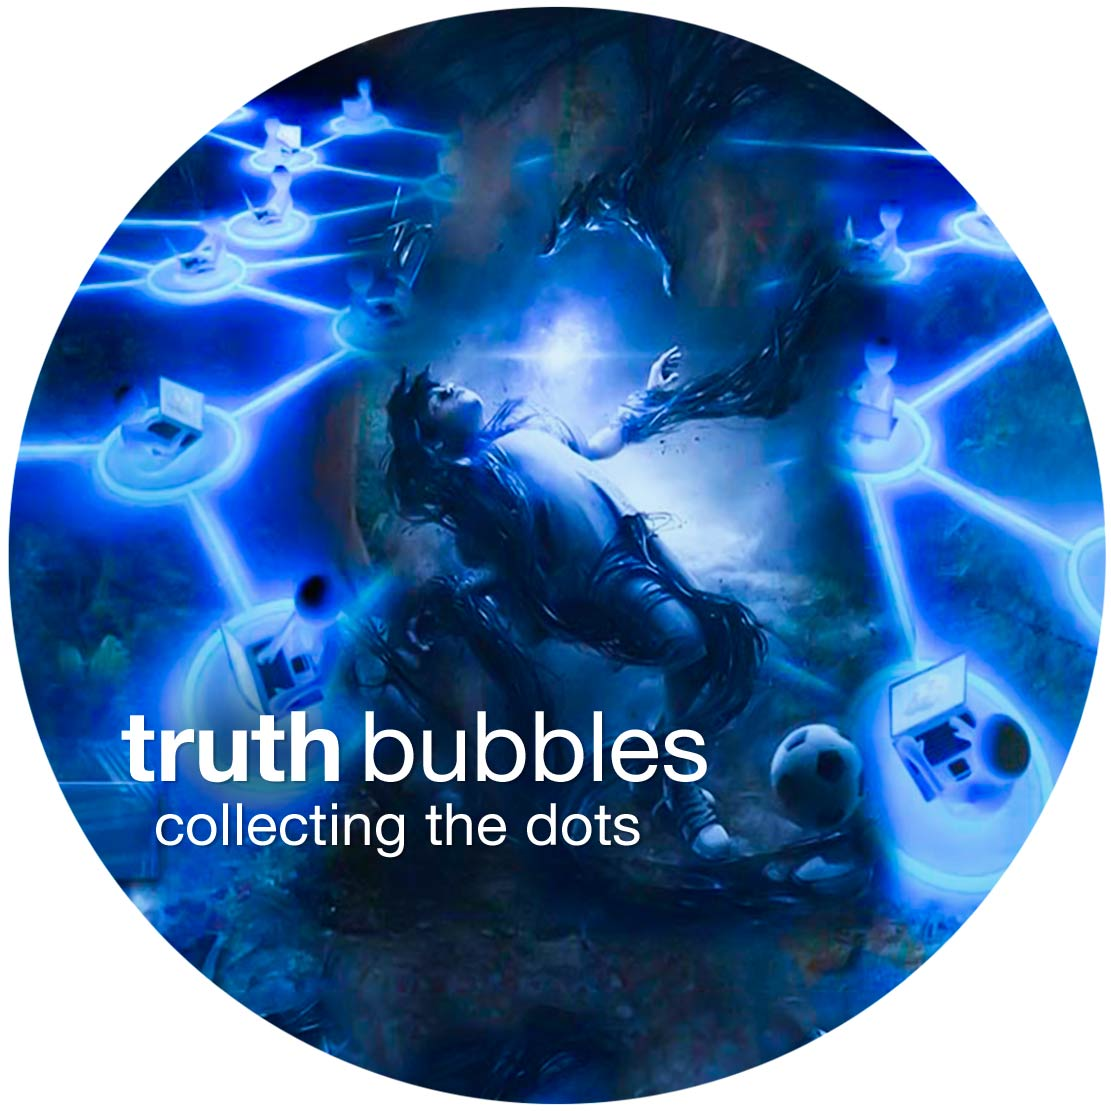 truthbubbles